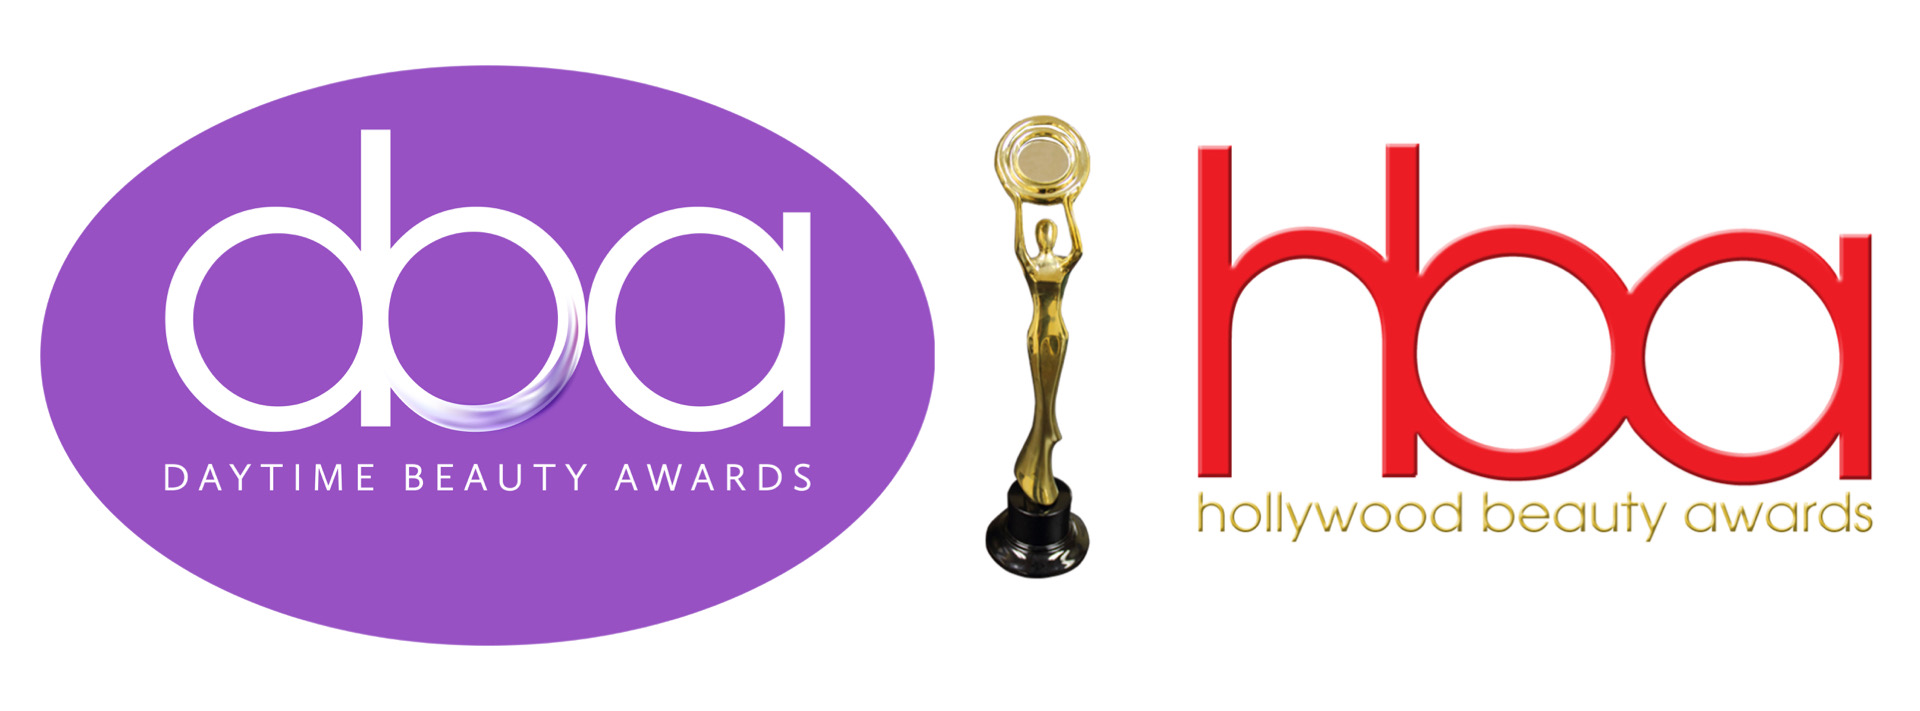 daytime beauty awards logo, hollywood beauty awards logo